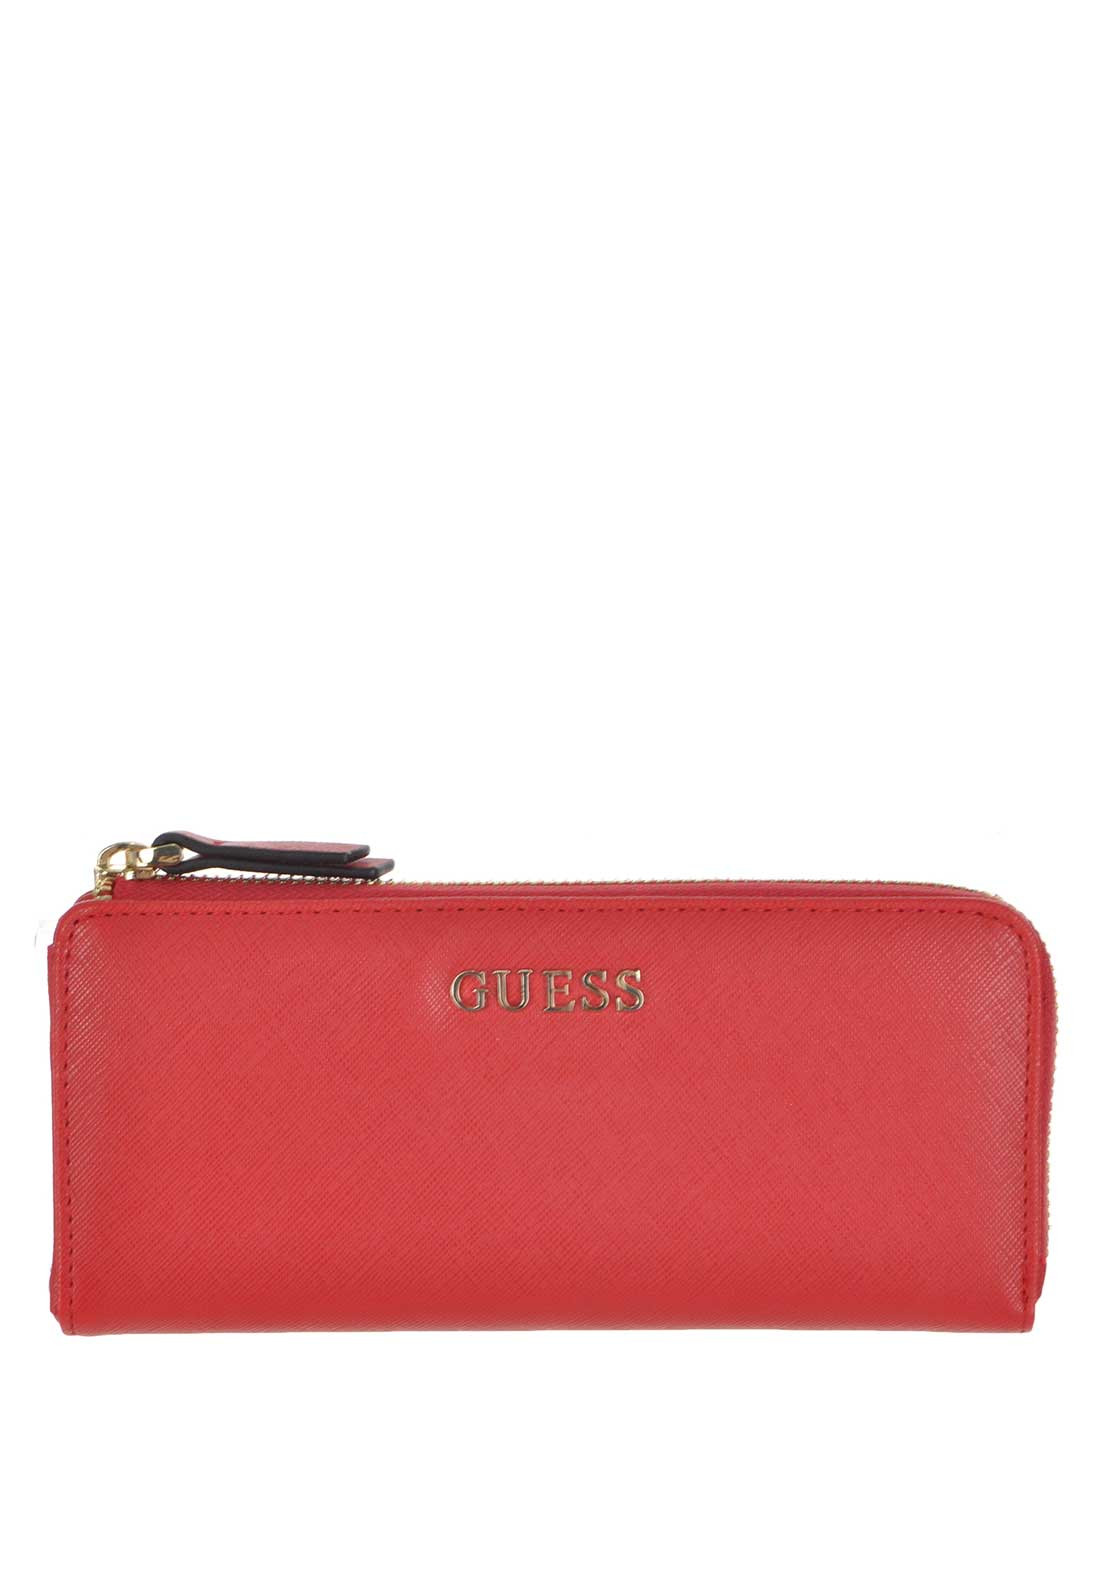 Guess Sissi Large Zip Around Wallet, Red